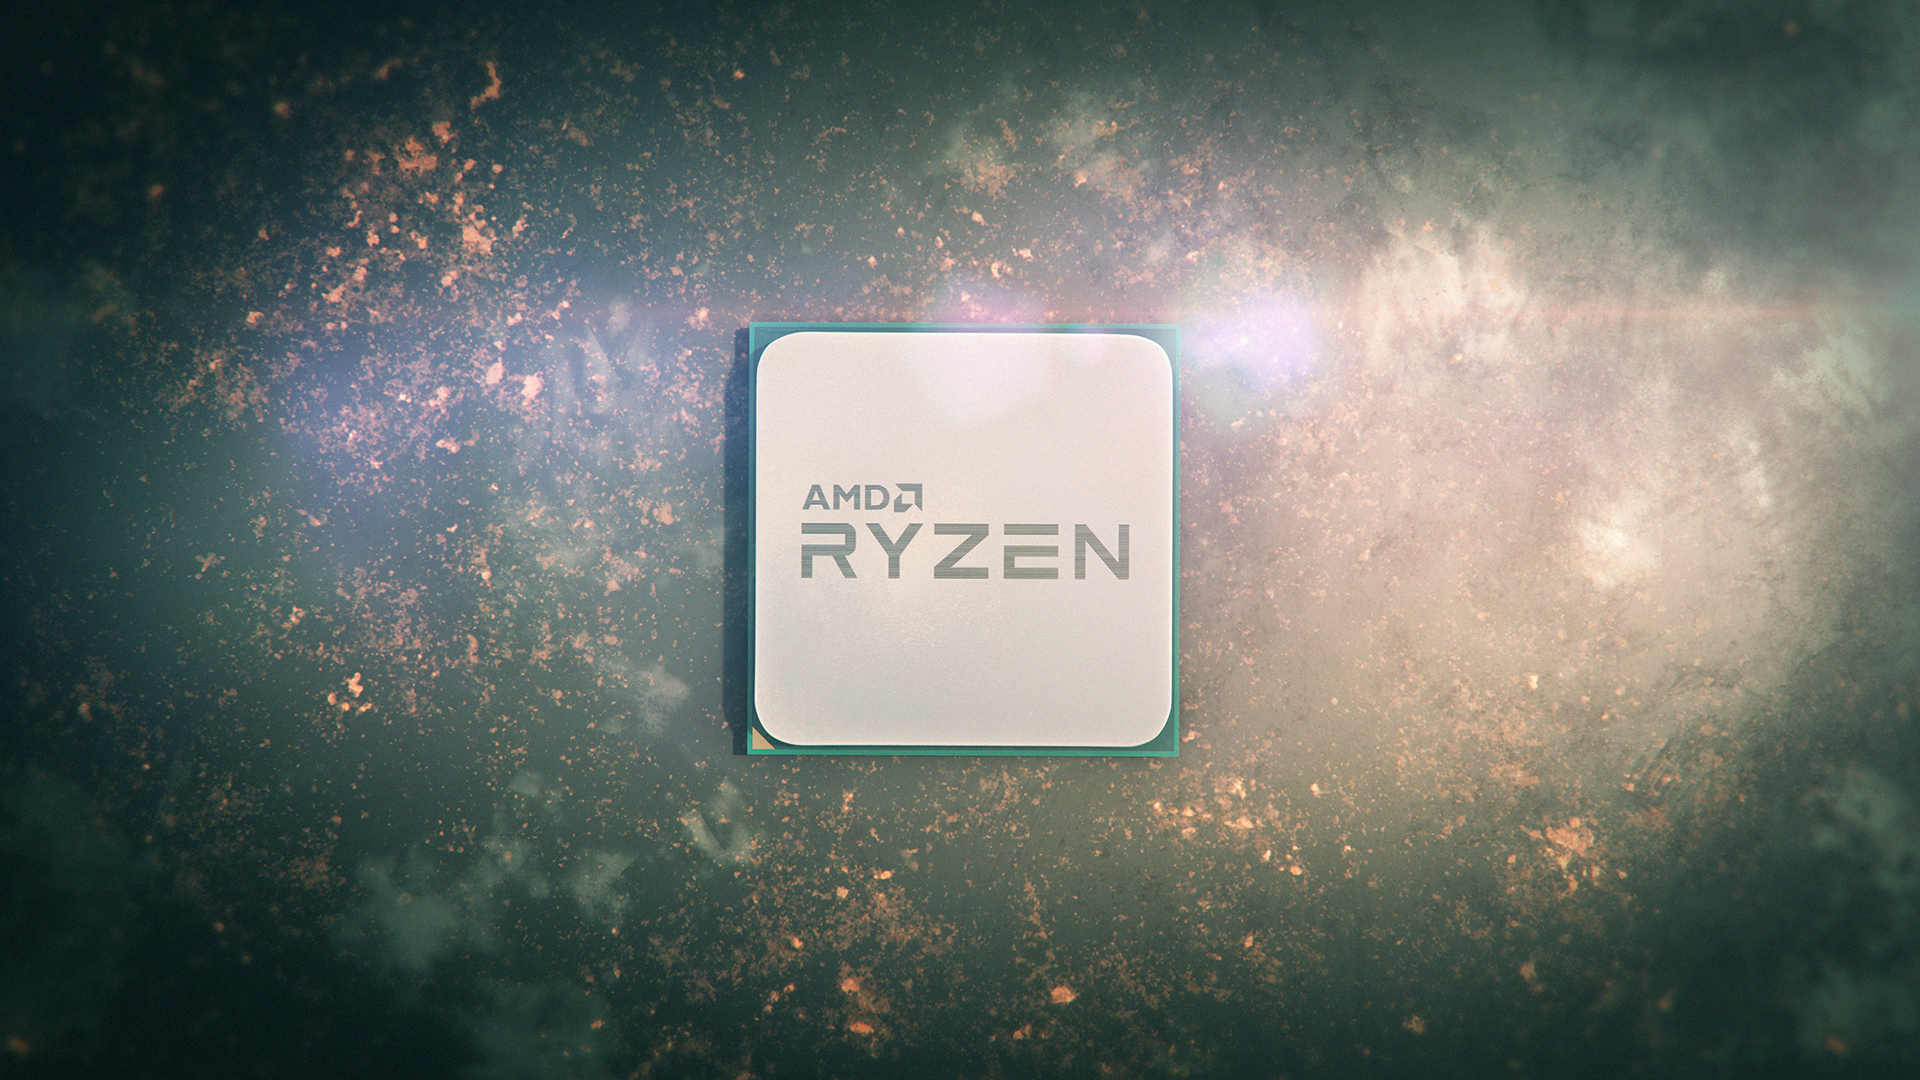 Amd Confirms Ryzen 4000 Cpus Will Be Out In 2020 And Probably That Nvidia Killer Gpu Too Techradar